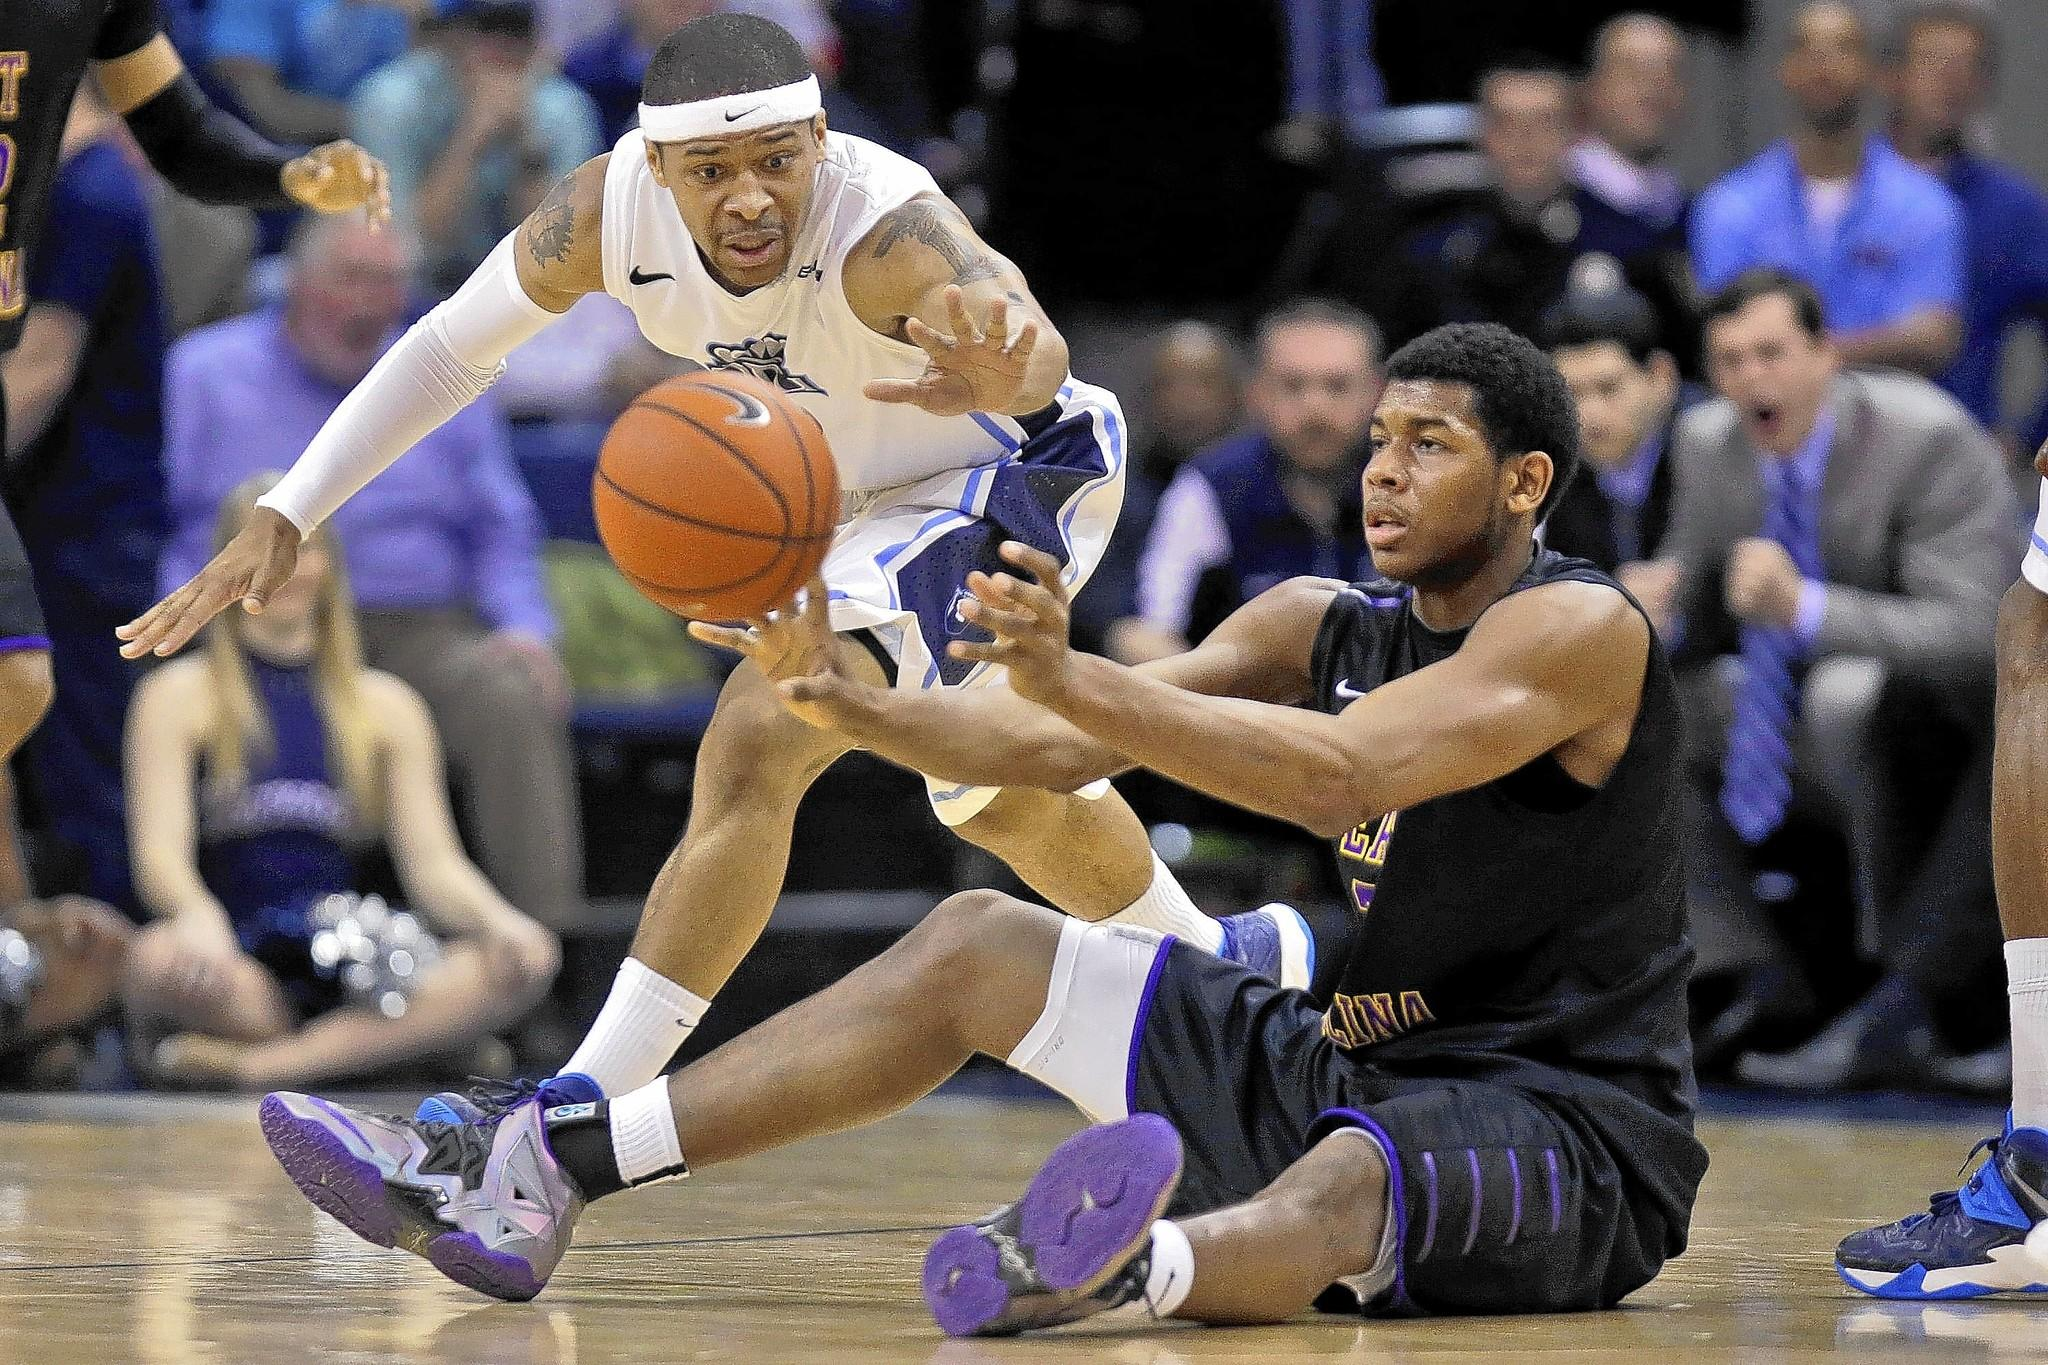 ODU's Jordan Baker, left, a former Hampton High star, competes for the ball with ECU's Brandan Stith on Thursday in Norfolk.